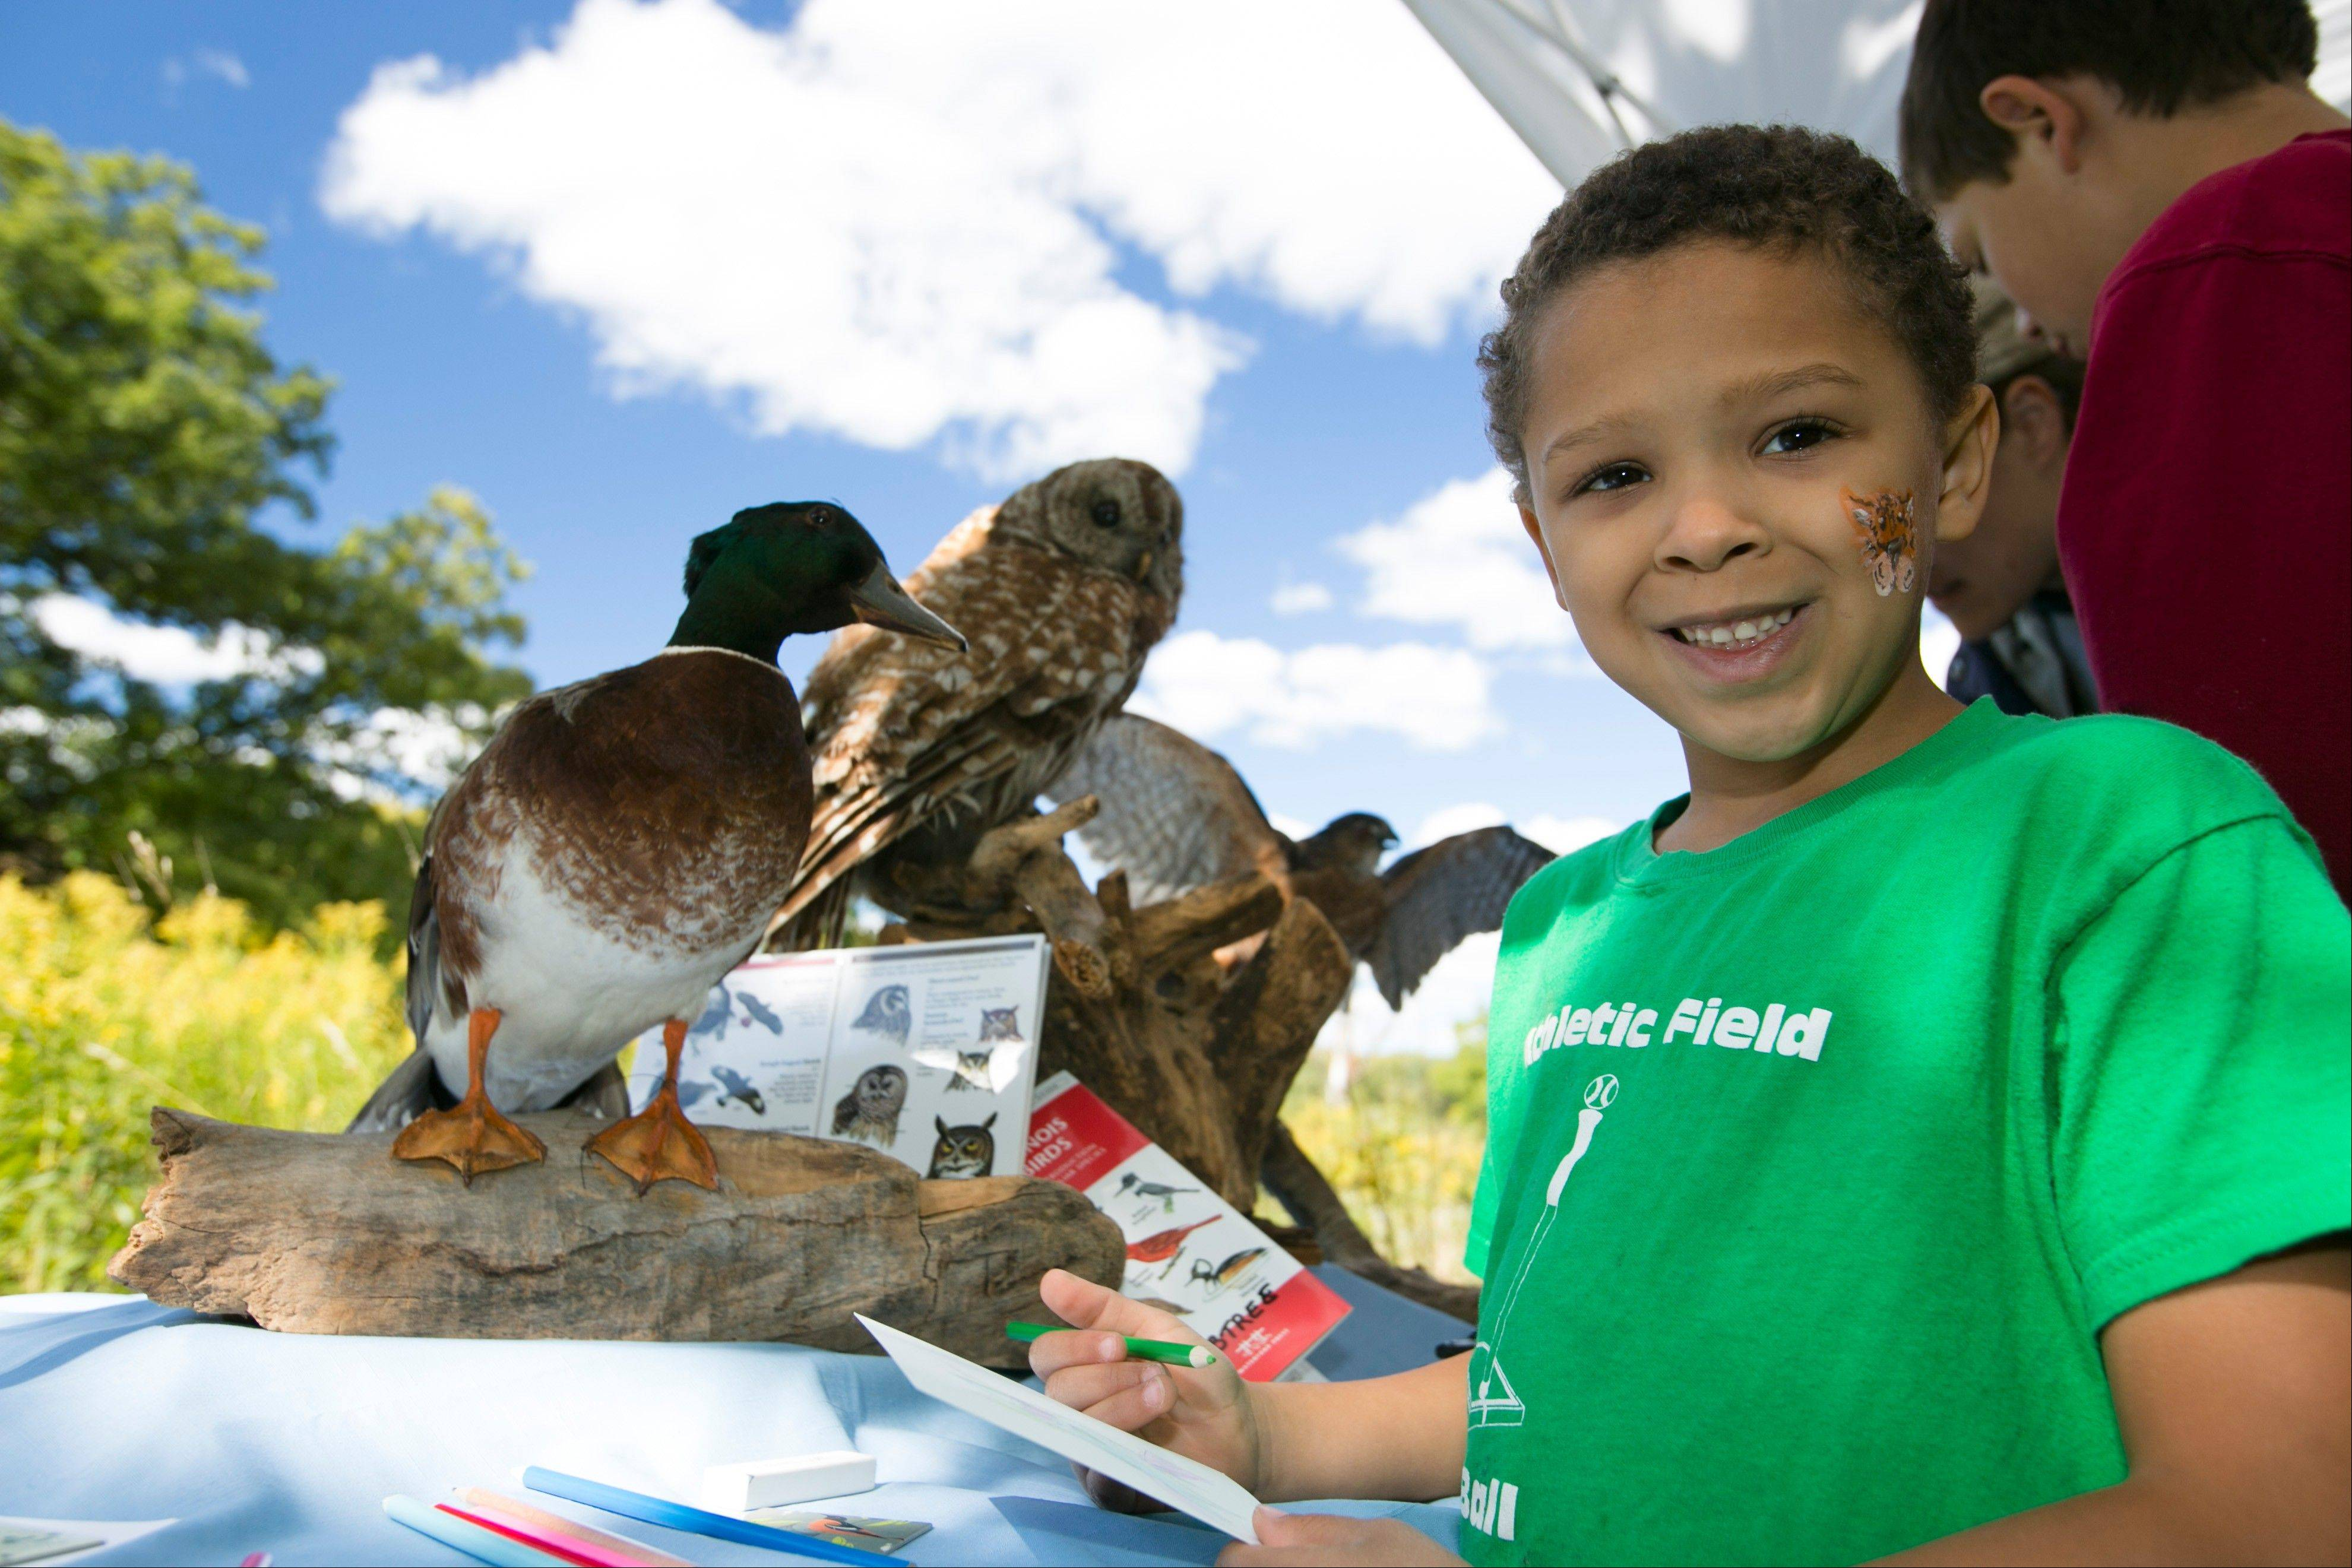 Kids can sculpt with clay, paint or draw at the Art in Nature event at Crabtree Nature Center Sunday.